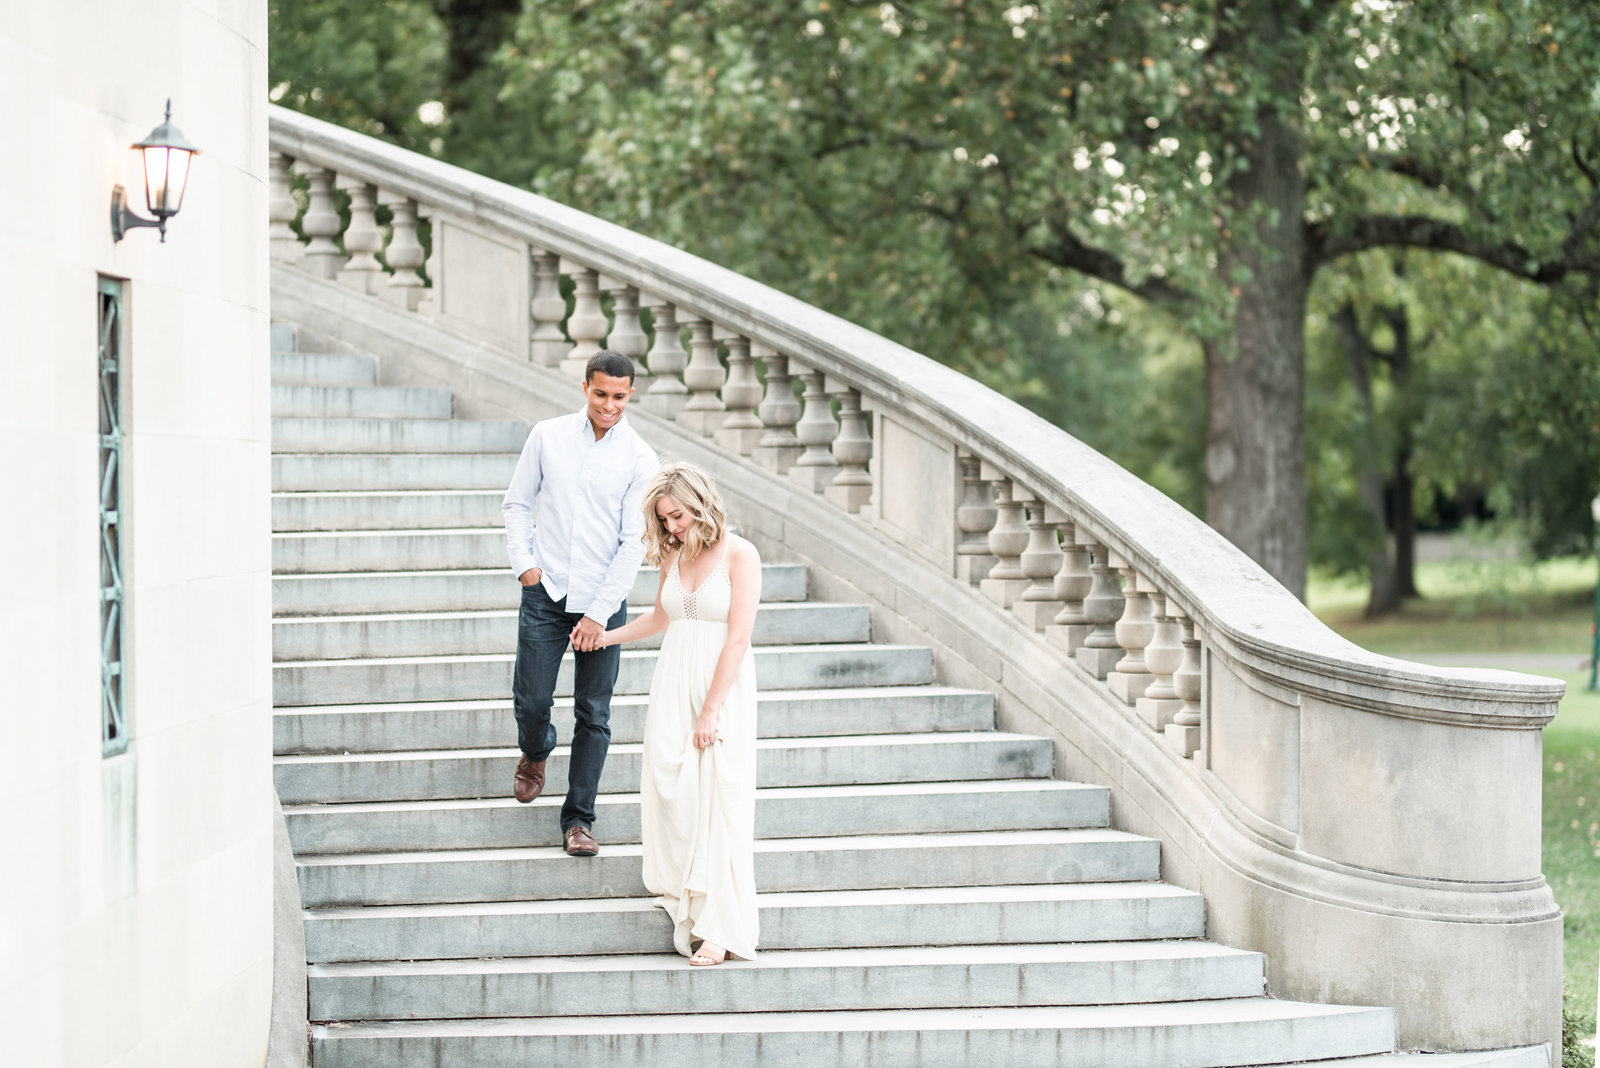 byrd-park-carillon-tower-richmond-virginia-engagement-photo239